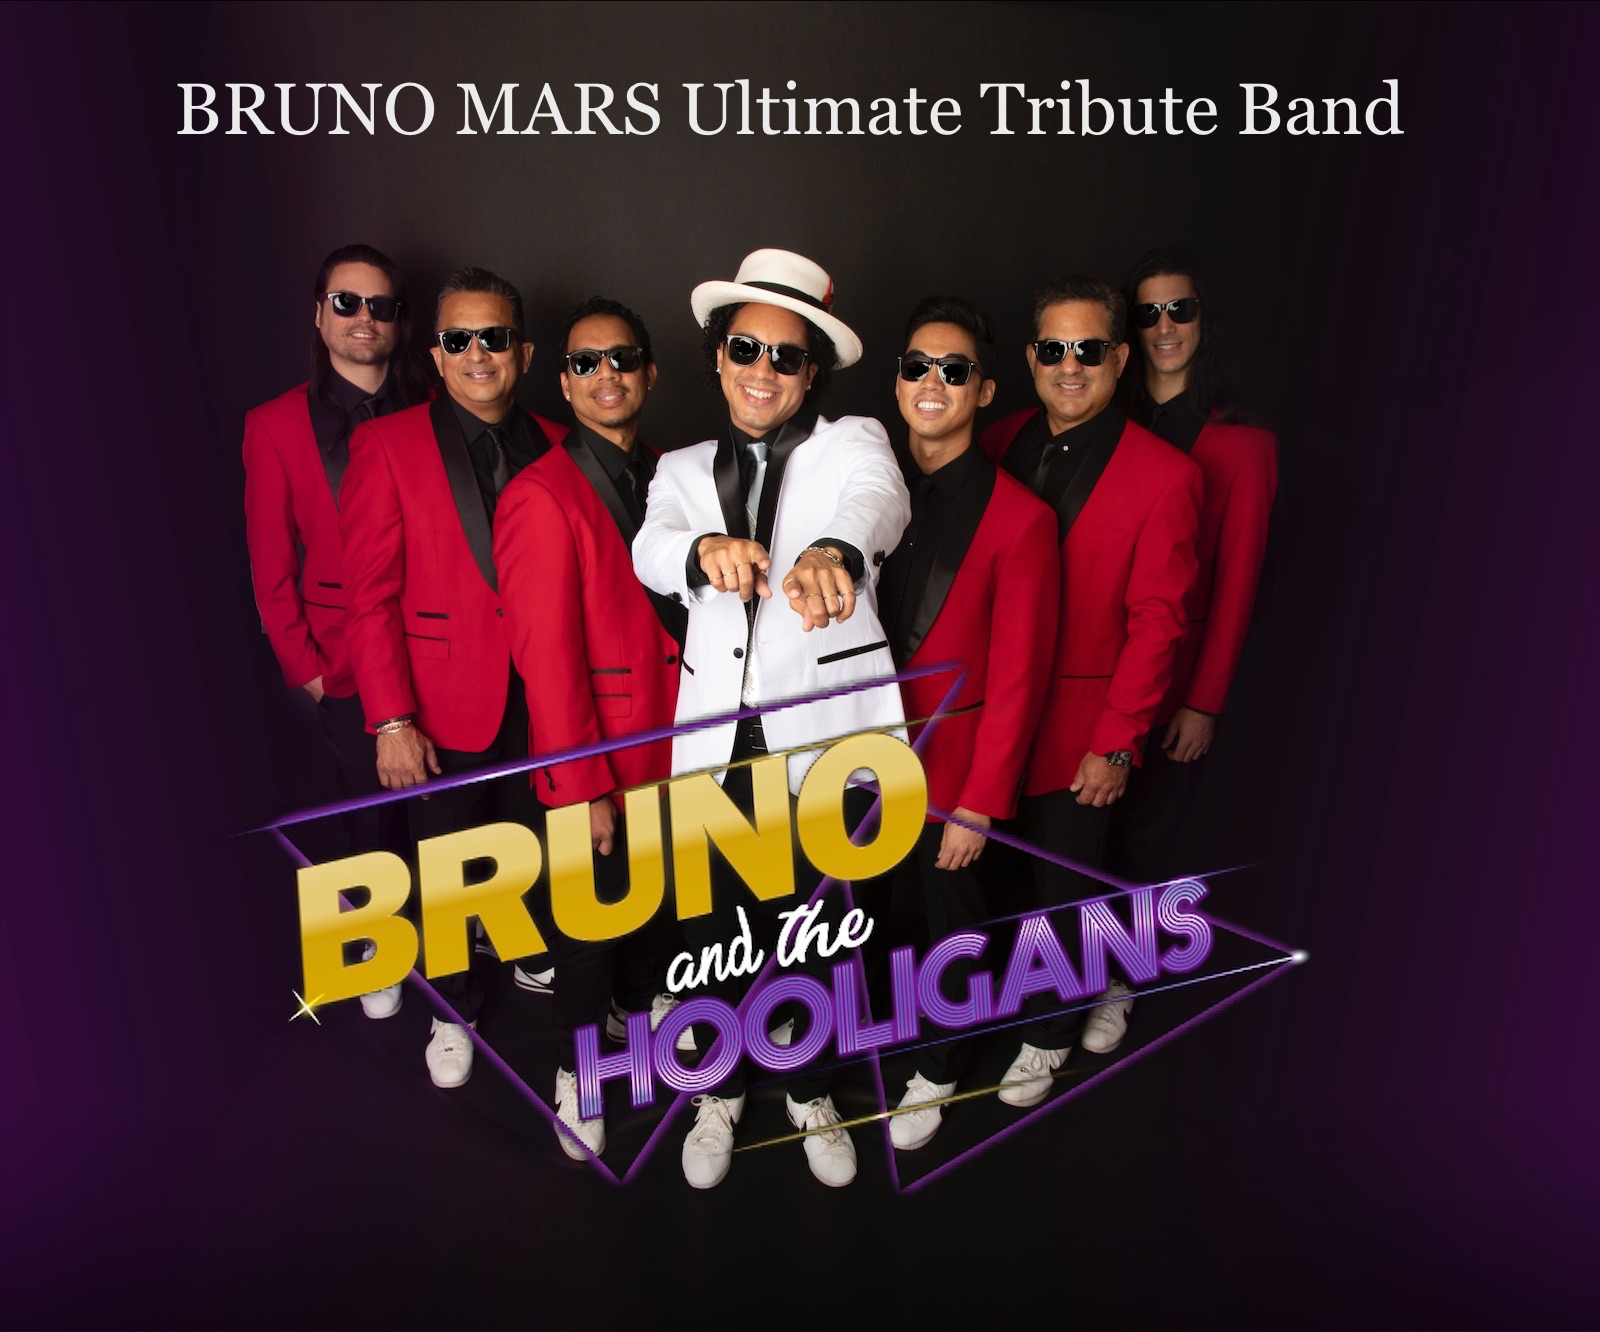 Bruno and the Hooligans at its best!